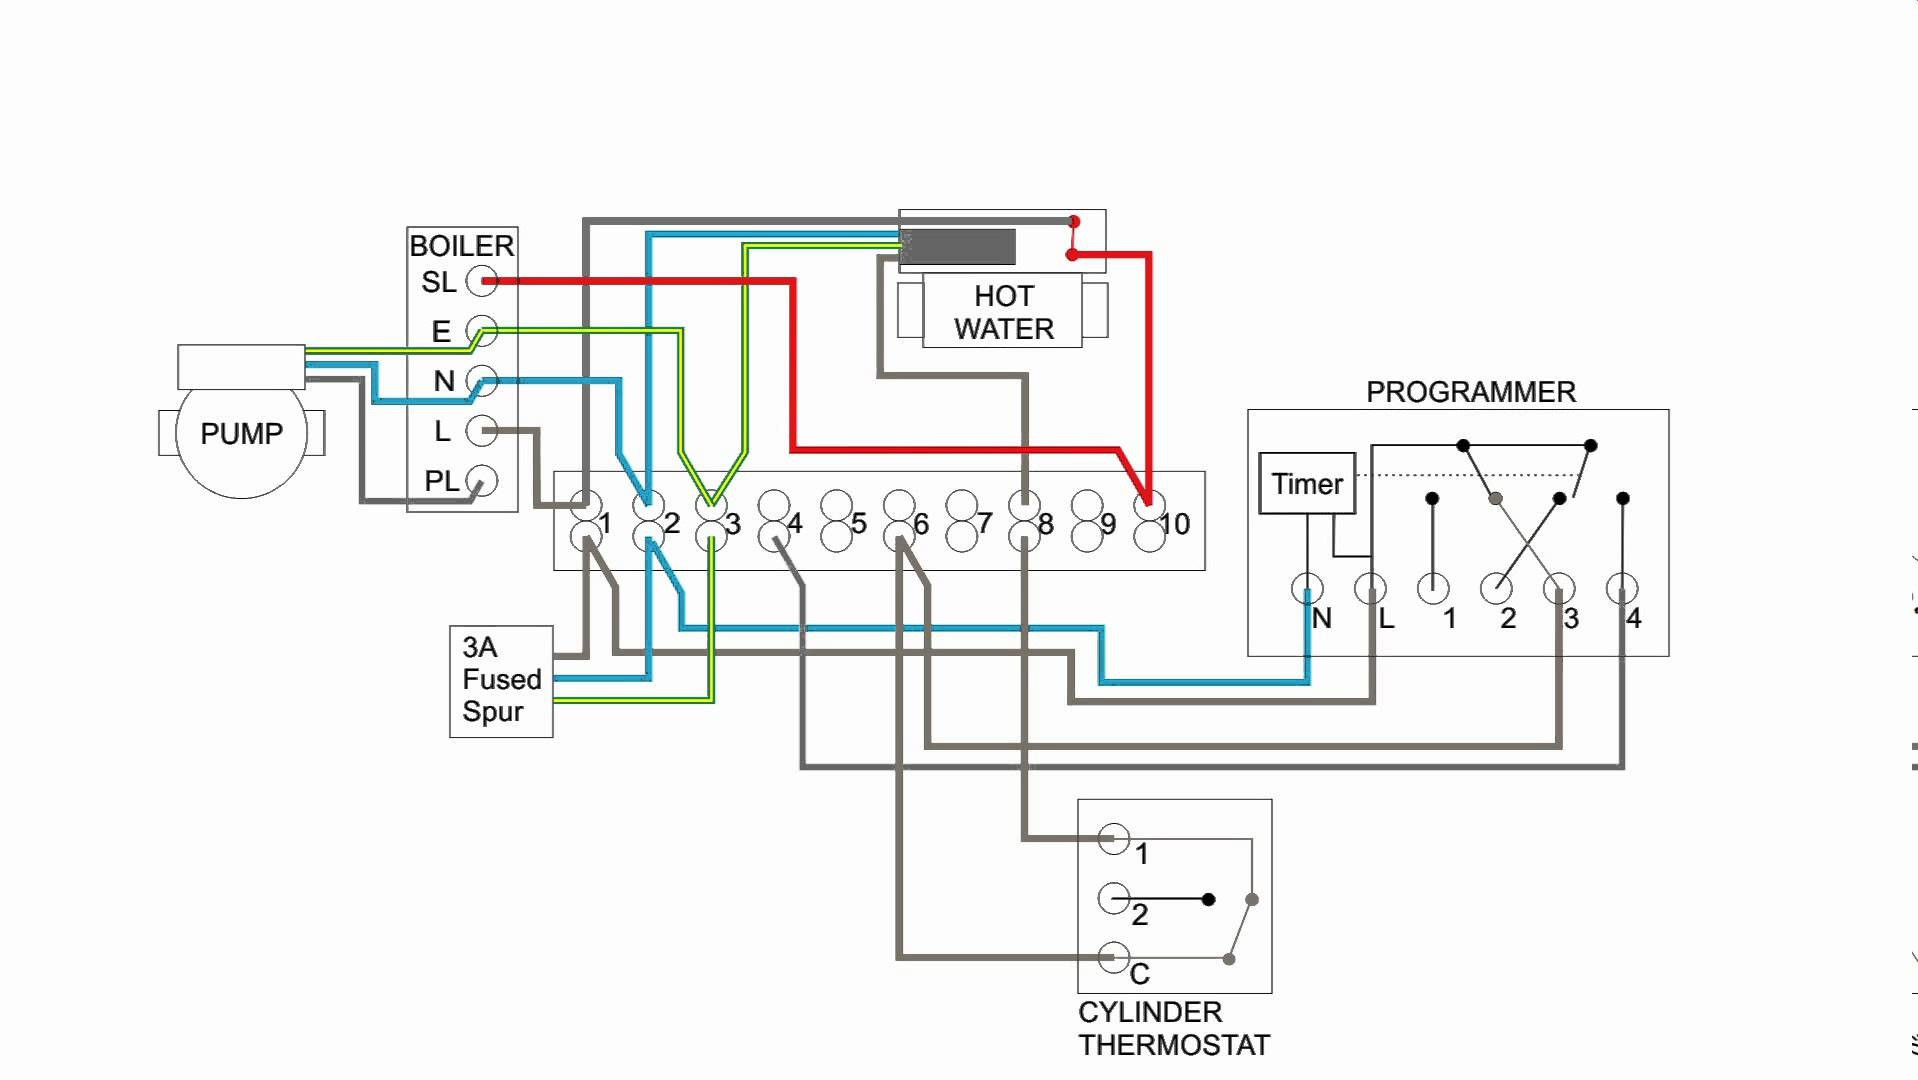 Hot Water Heating System Wiring Schematic | Switch Wiring Diagram - 5 Wire Thermostat Wiring Diagram